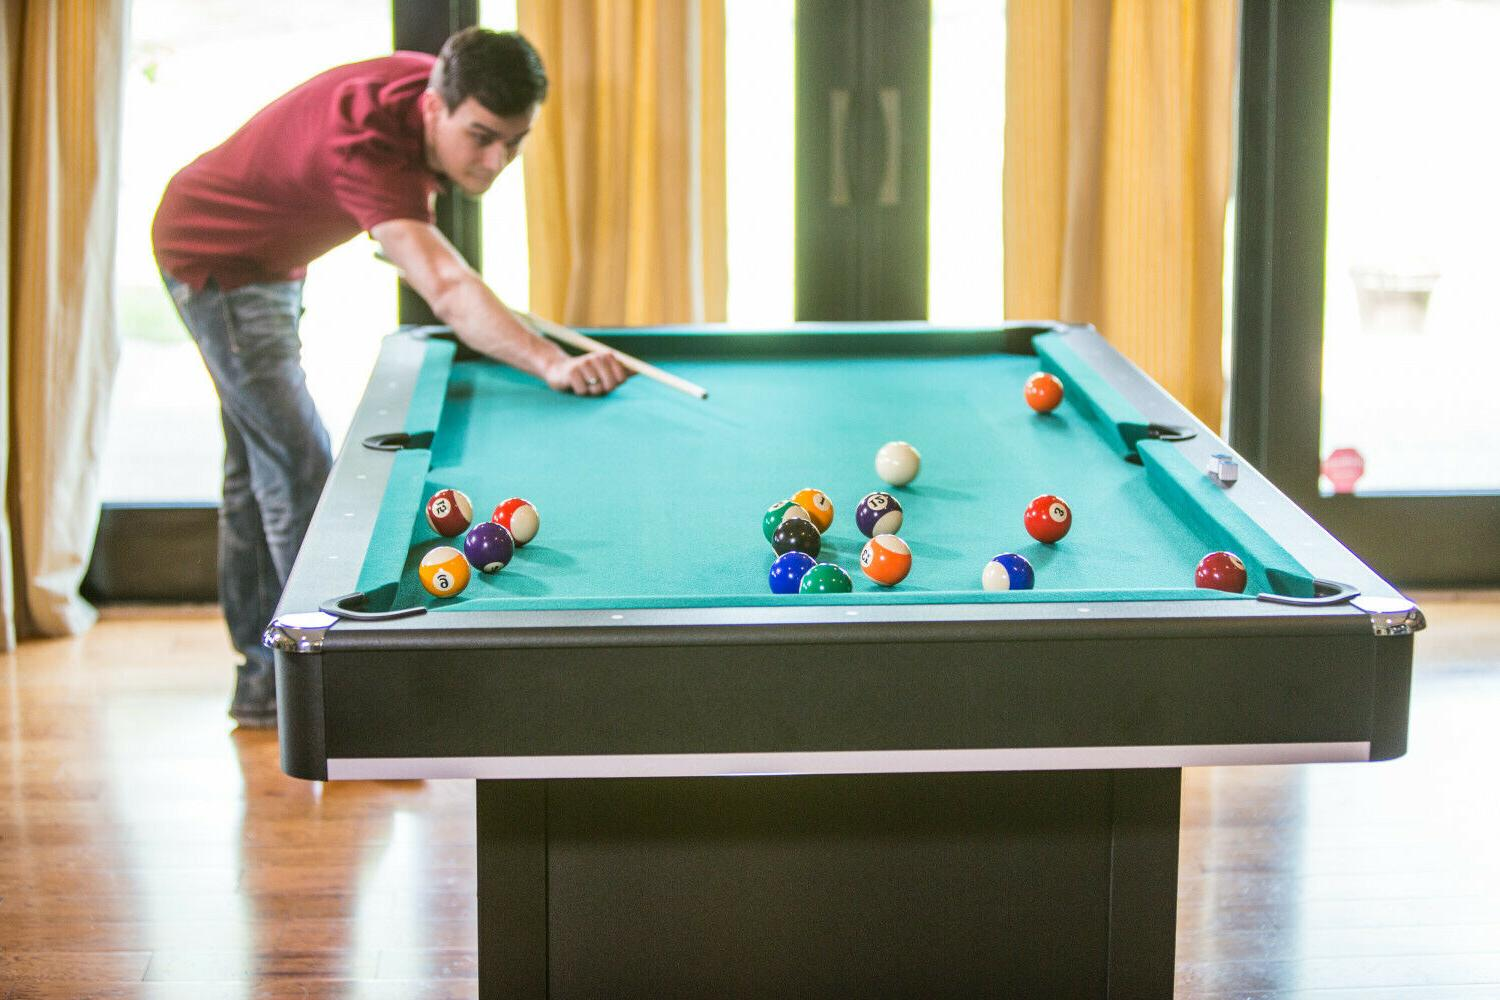 Pool Table Billiards With Tennis 2-in-one Conversion